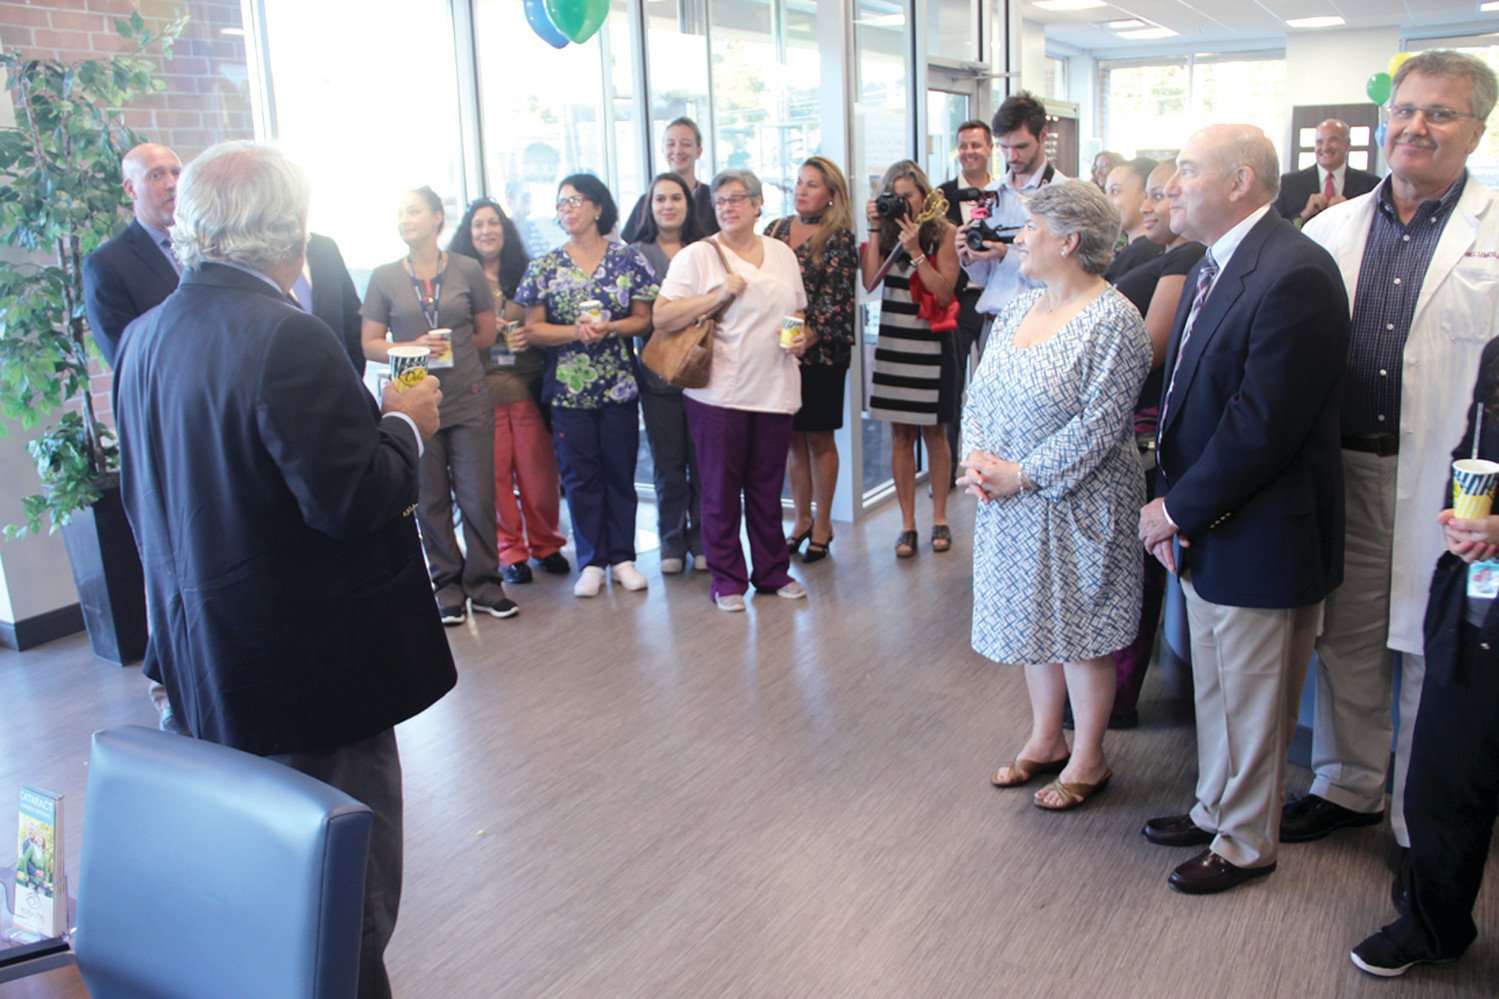 MANY YEARS, MANY FRIENDS: Dr. Paul Koch addresses staff, friends and family who attended the formal opening of the new Koch Eye Associates office on Greenwich Avenue.